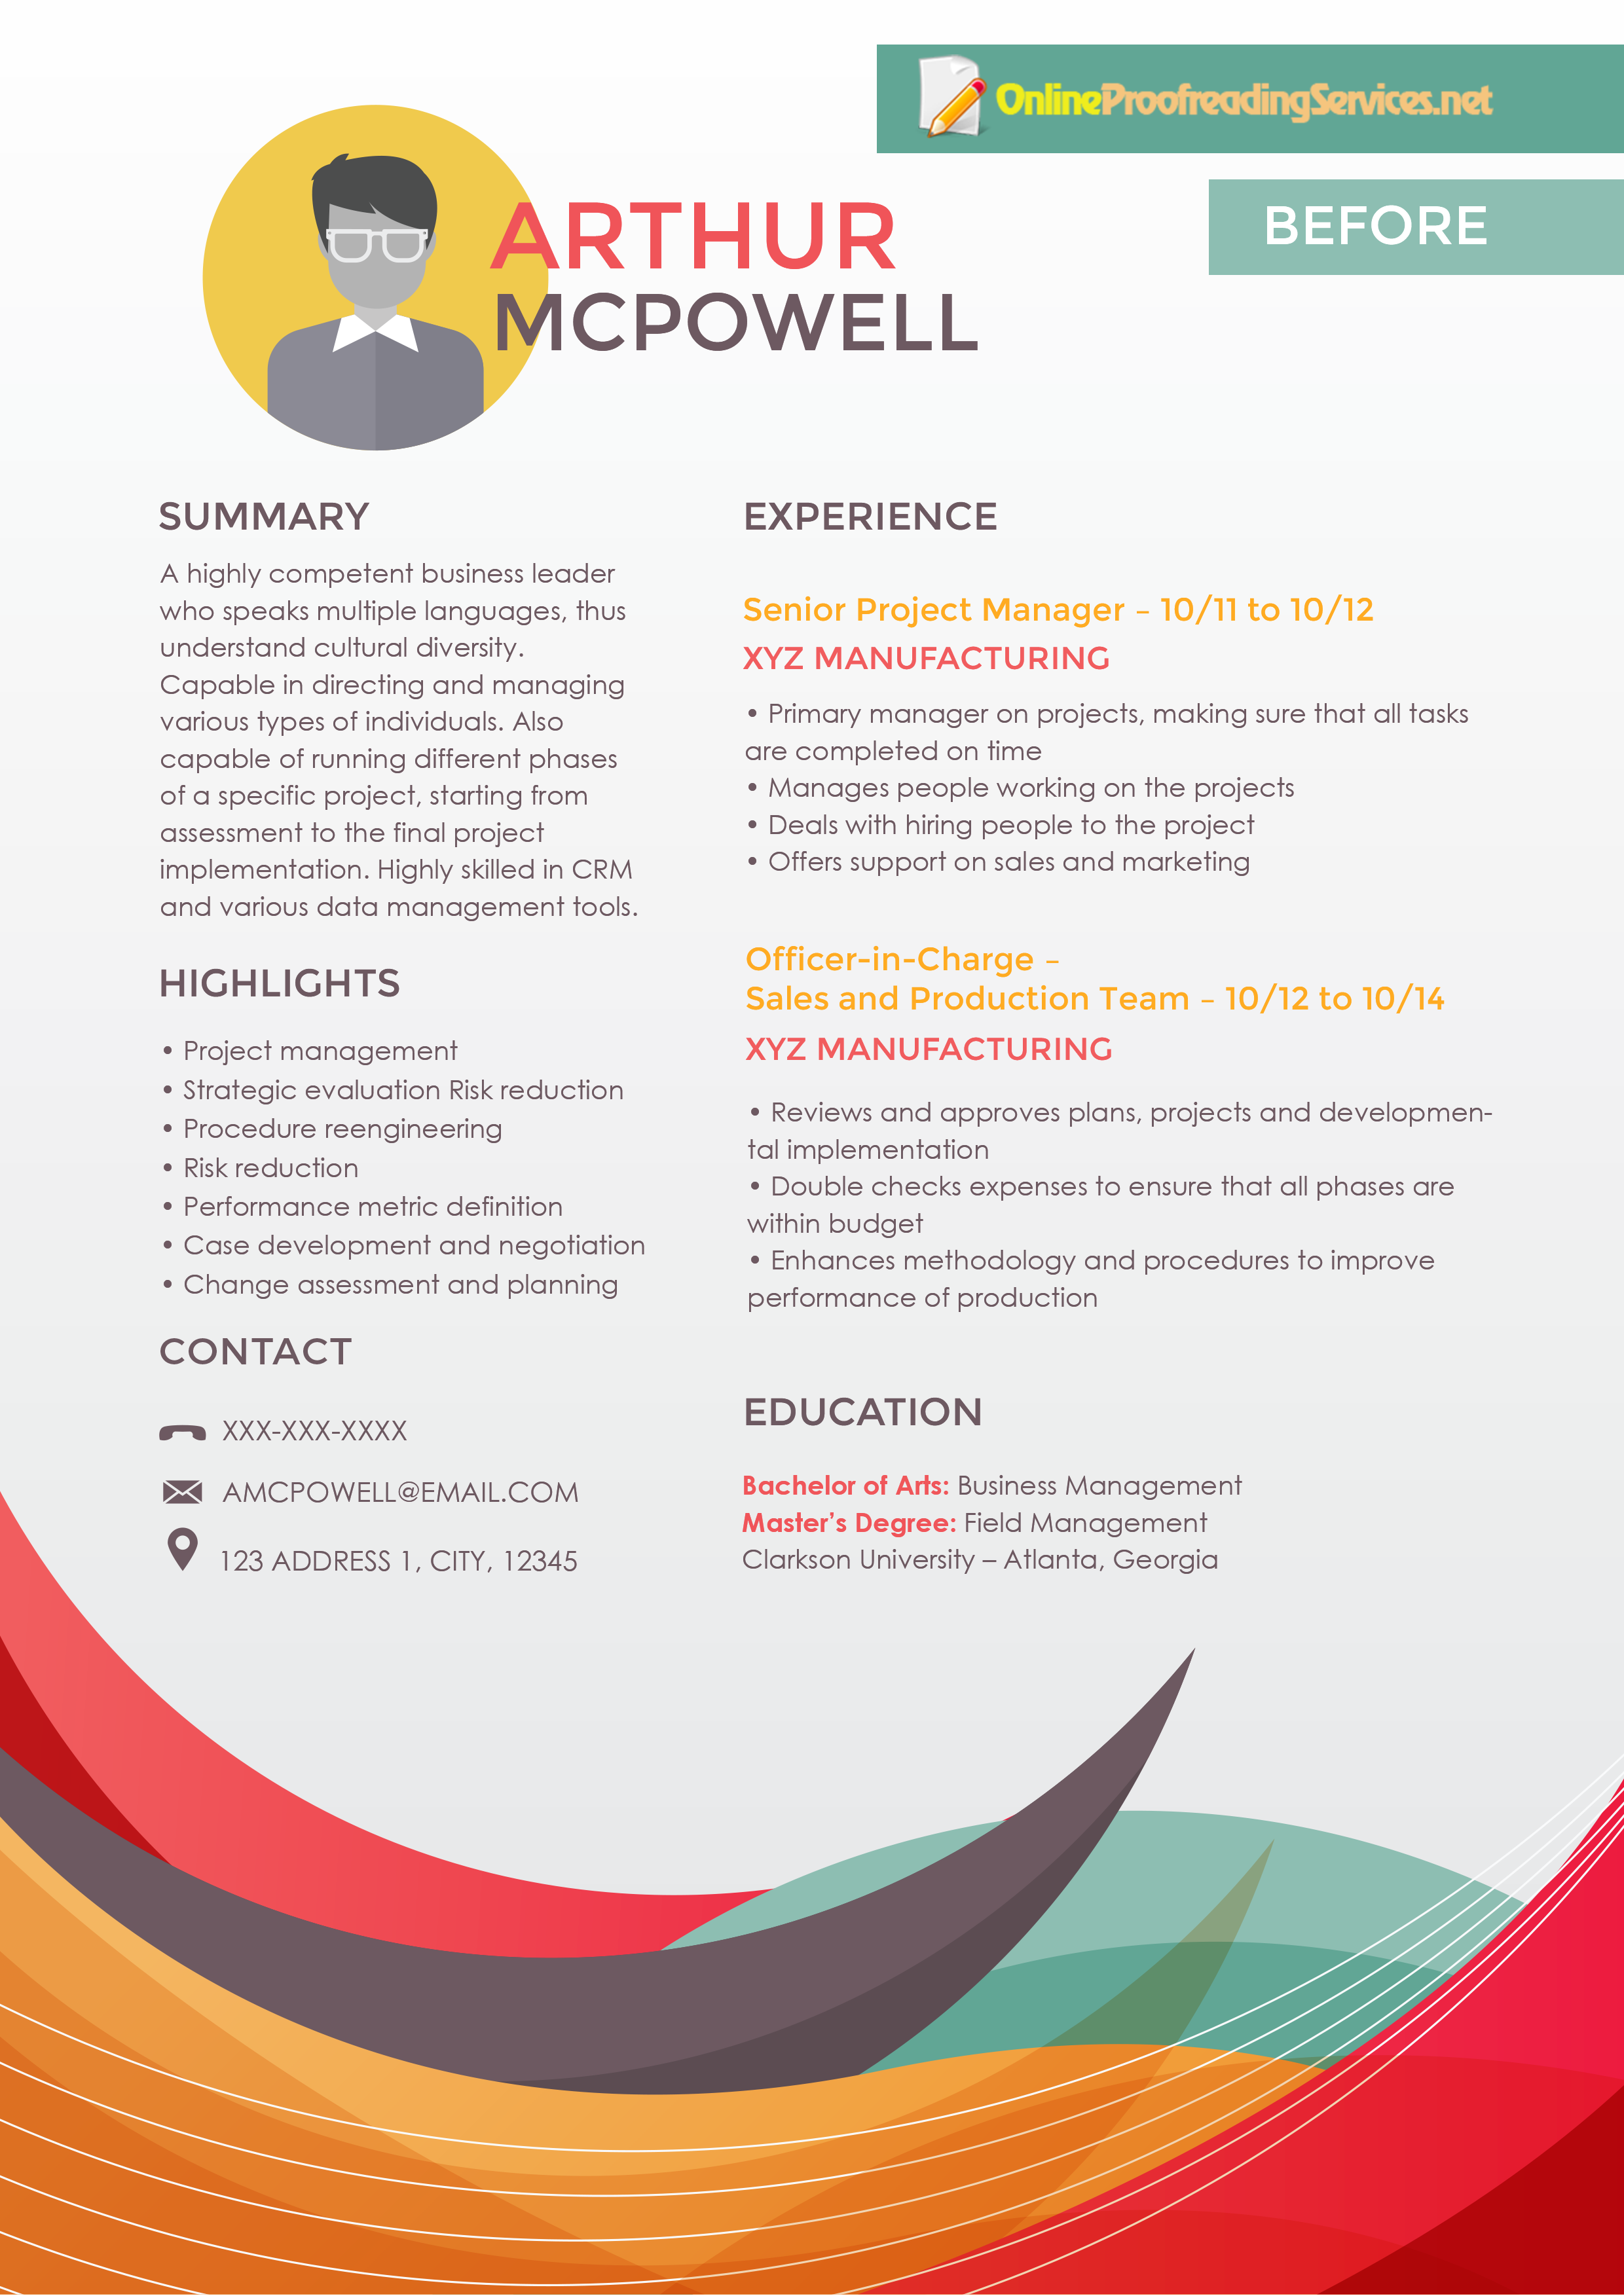 See How A Flawless Resume Looks Like With This Proofreader Resume